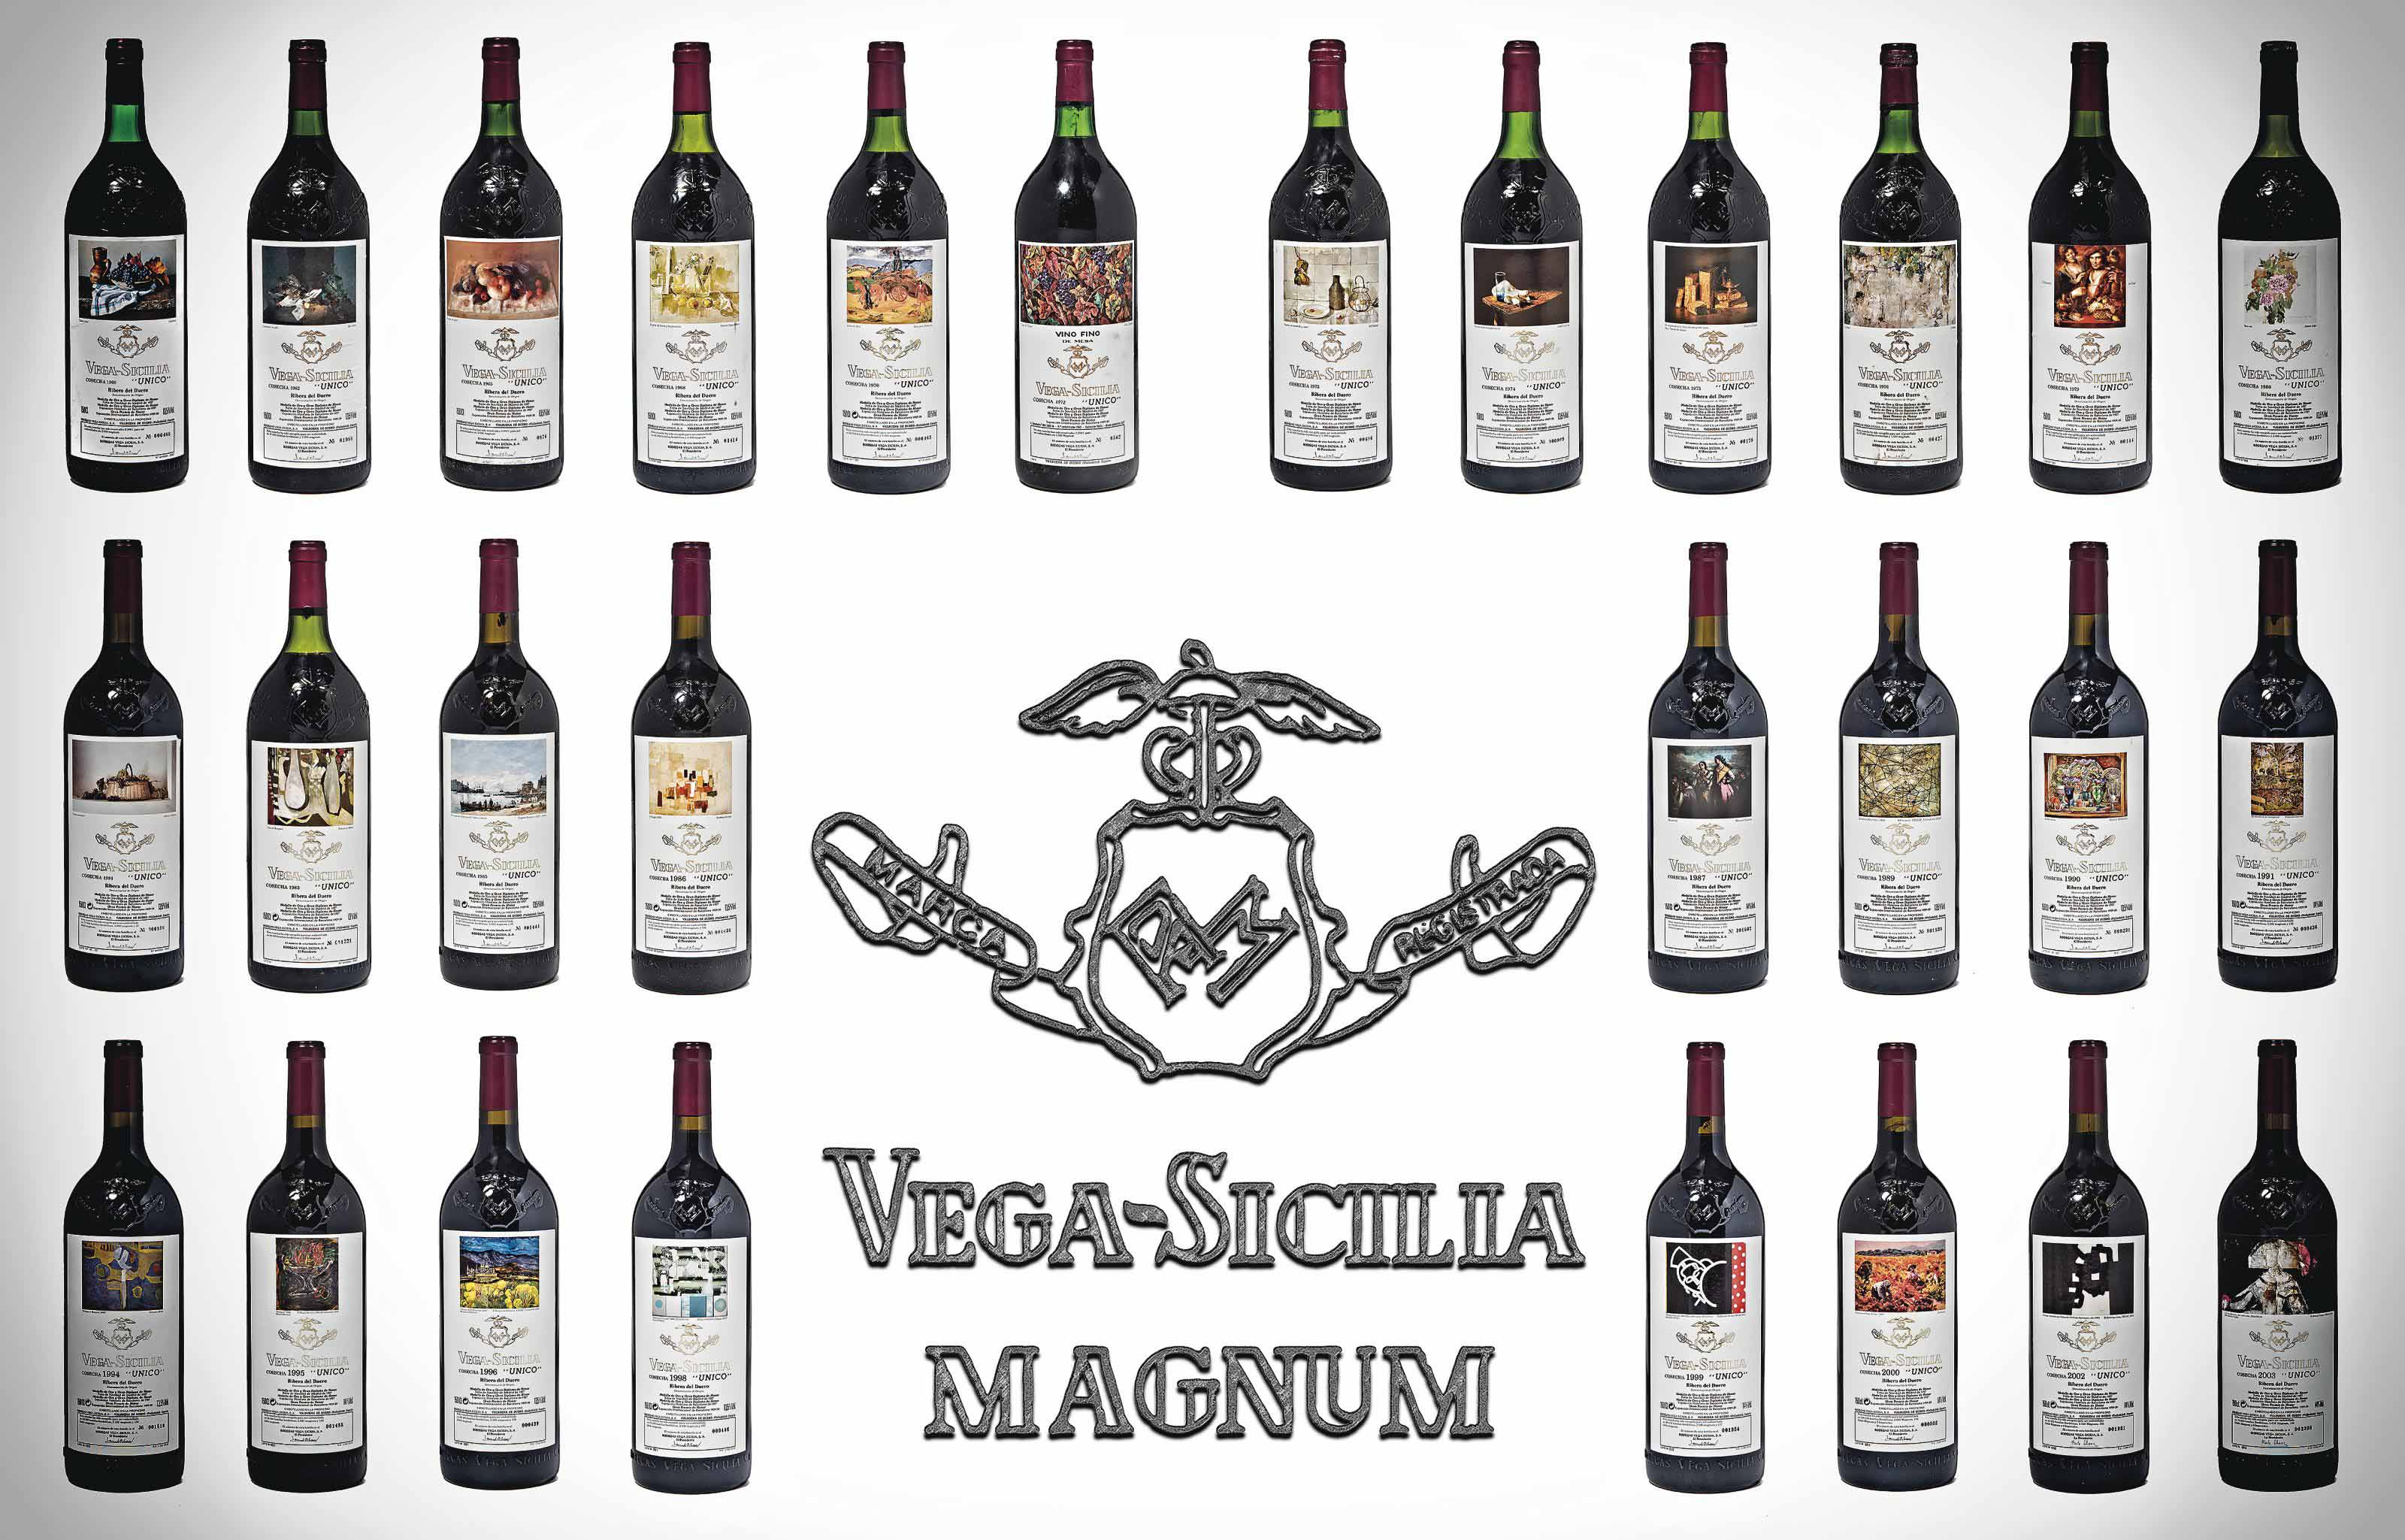 Vega Sicilia Unico 1960 magnum (1) 1962 magnum (1) 1965 magnum (1) 1968 Signs of old seepage. Level top-shoulder magnum (1) 1970 Level top-shoulder magnum (1) 1972 Signs of old seepage. Slightly bin-soiled label magnum (1) 1973 magnum (1) 1974  Signs of old seepage. Level top-shoulder magnum (1) 1975 magnum (1) 1976 Signs of old seepage, slightly corroded capsule. Level top-shoulder  magnum (1) 1979 magnum (1) 1980 Level top-shoulder  magnum (1) 1981 Slightly nicked label  magnum (1) 1982 Very slightly creased label magnum (1) 1983 Signs of seepage. Level top-shoulder  magnum (1) 1985 magnum (1) 1986 magnum (1) 1987 magnum (1) 1989 magnum (1) 1990 magnum (1) 1991 magnum (1) 1994 magnum (1) 1995 magnum (1) 1996 magnum (1) 1998 magnum (1) 1999 magnum (1) 2000 magnum (1) 2002 magnum (1) 2003 magnum (1)